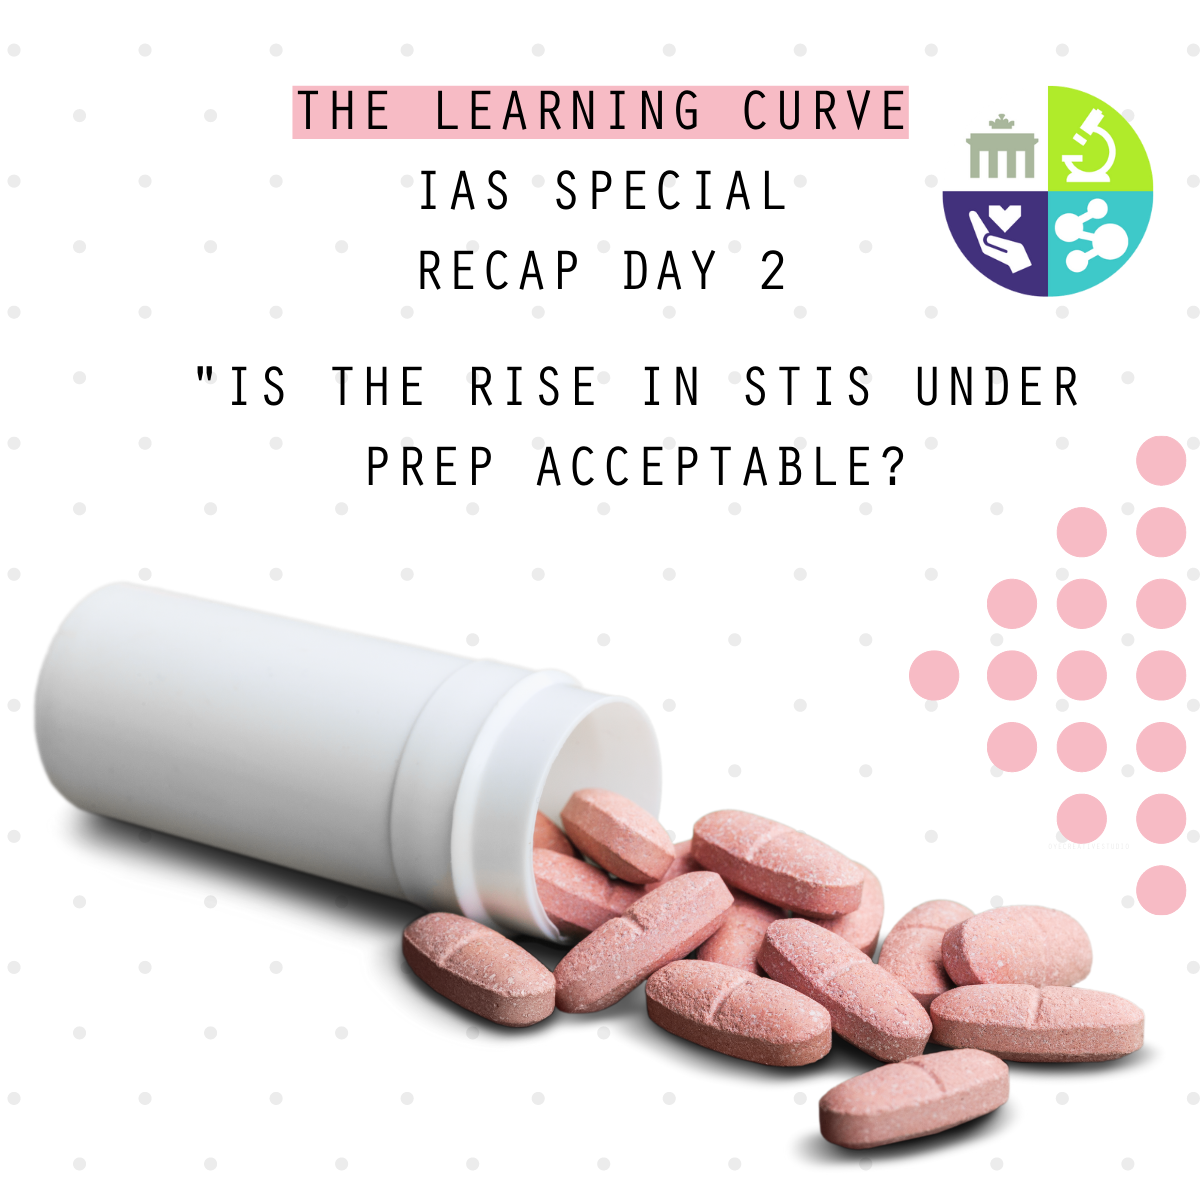 The Learning Curve - IAS Special Day 2